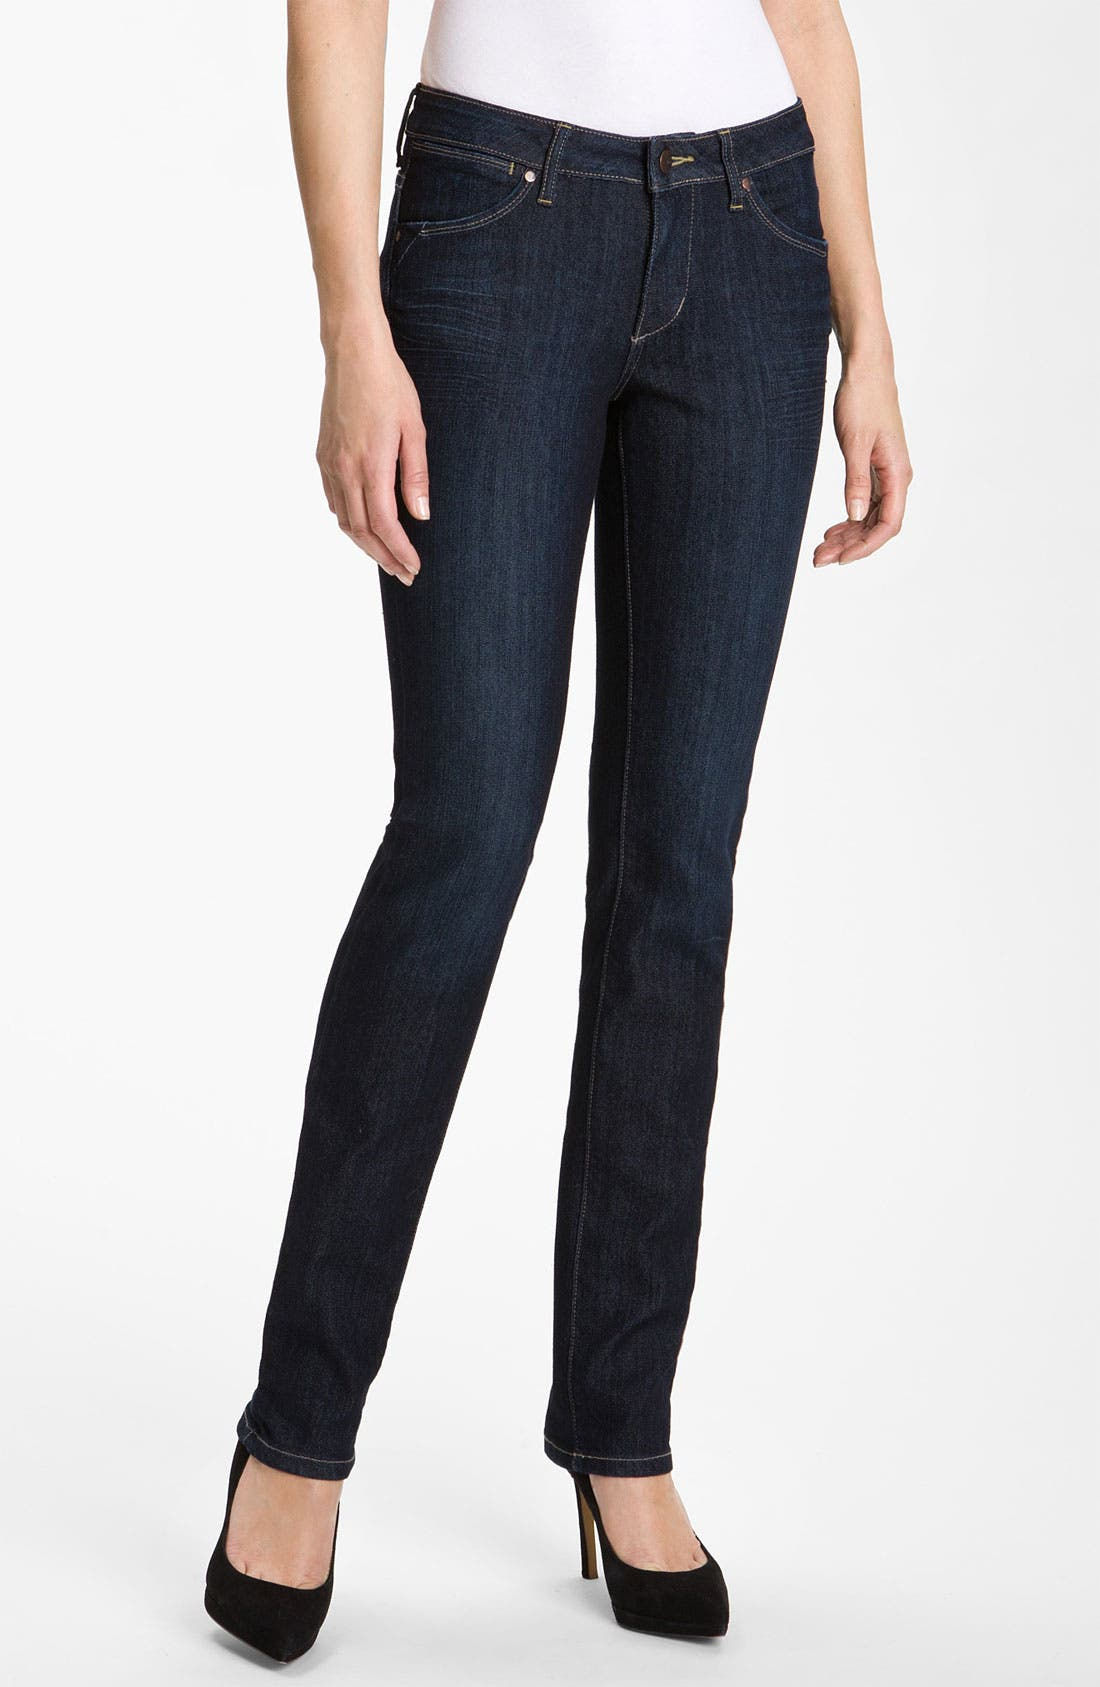 Alternate Image 1 Selected - Jag Jeans 'New Jane' Slim Leg Jeans (Petite)